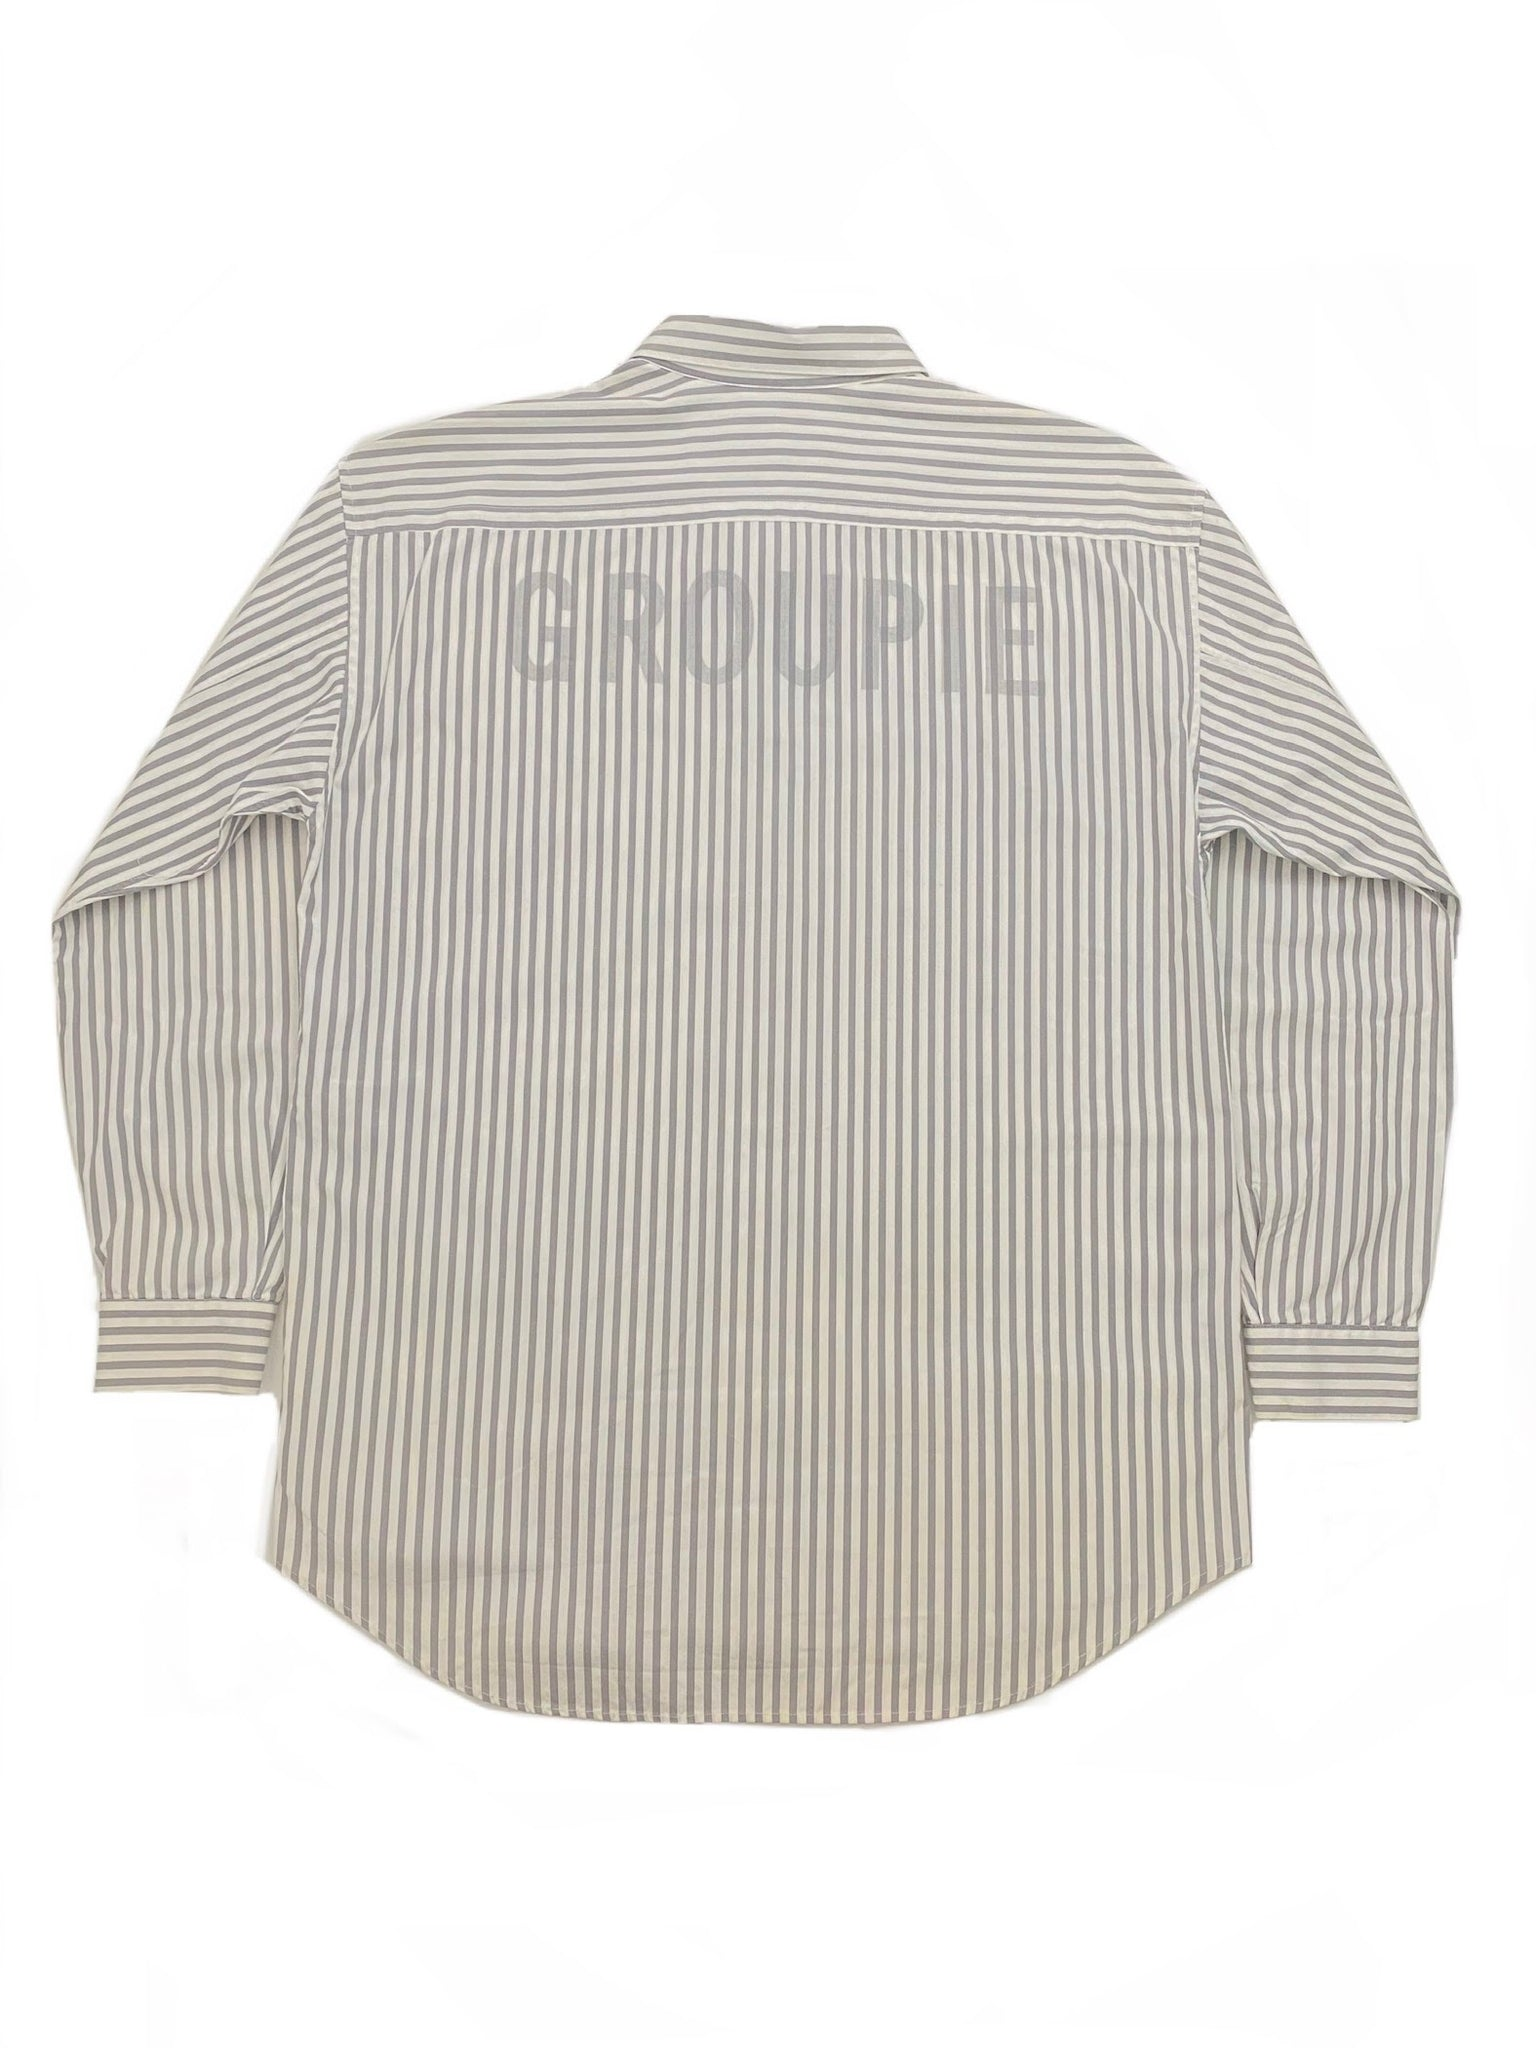 Undercover Jun Takahashi Ss99 'Relief' Groupie Button Up